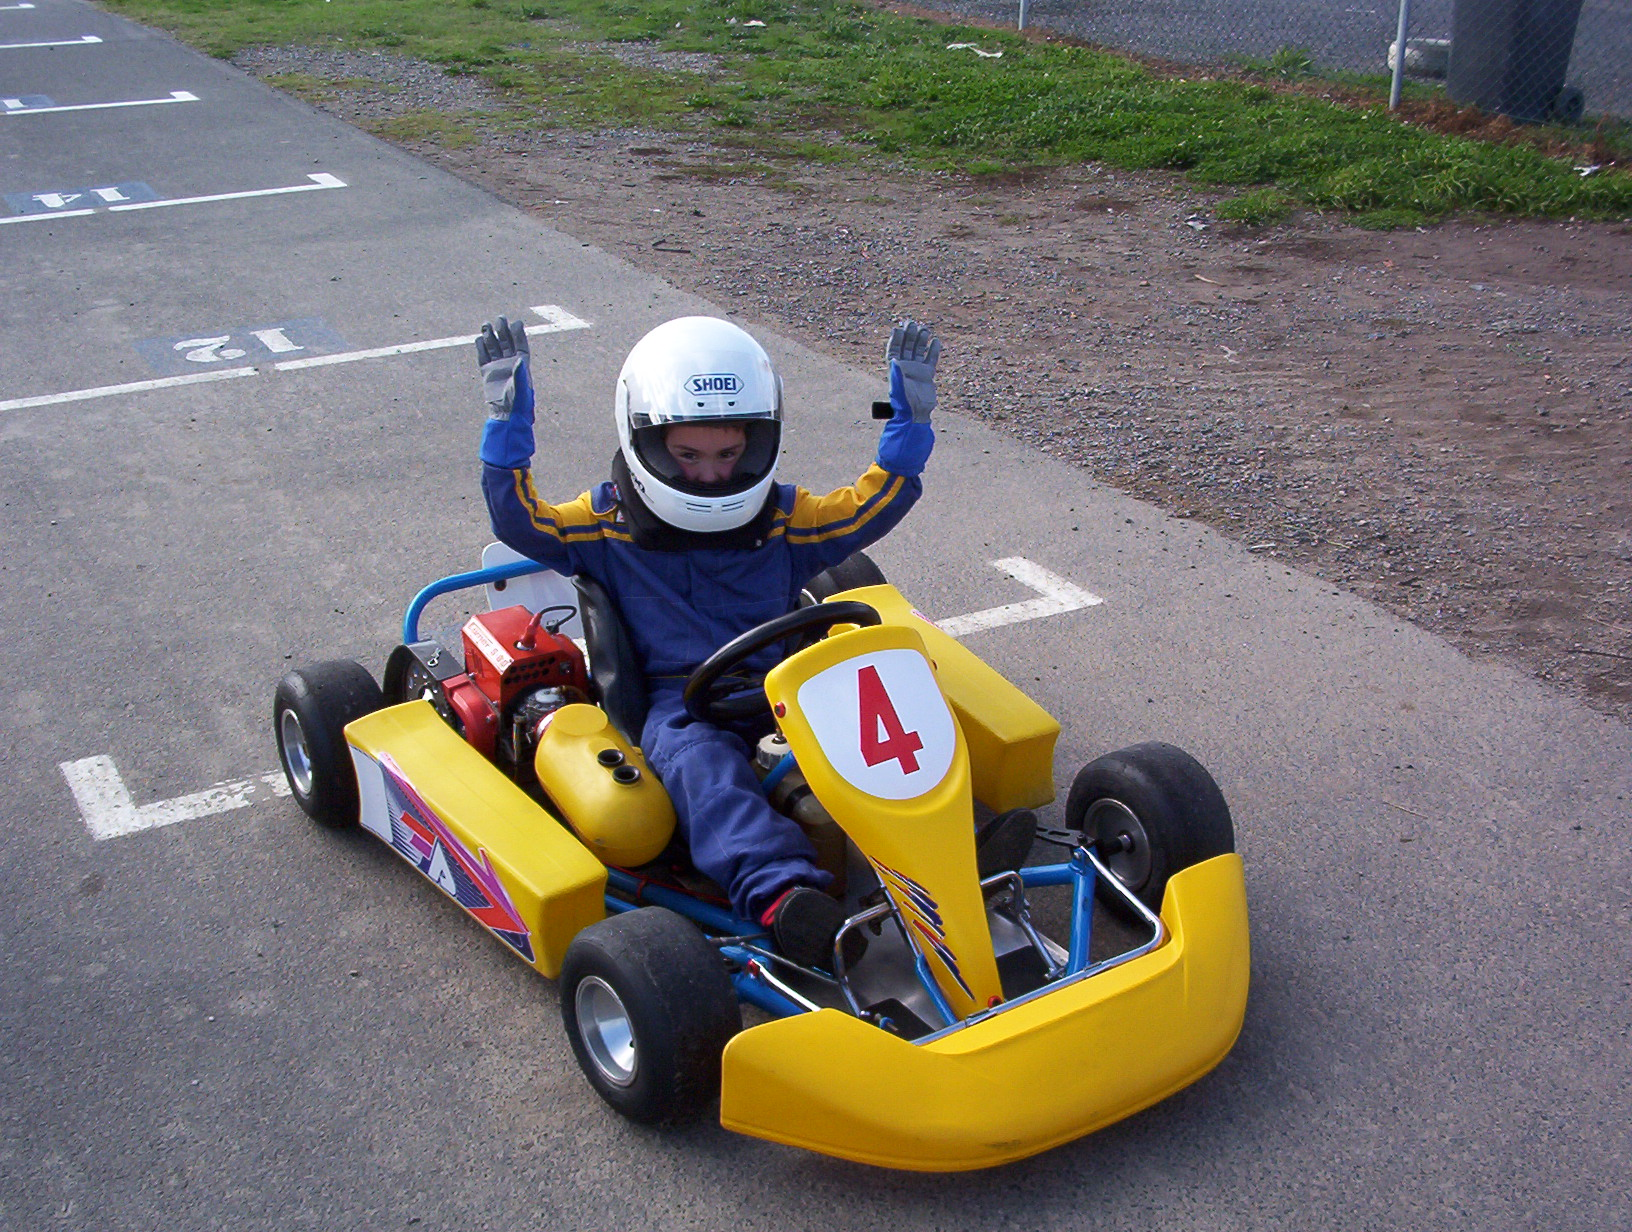 First time in a Go Kart